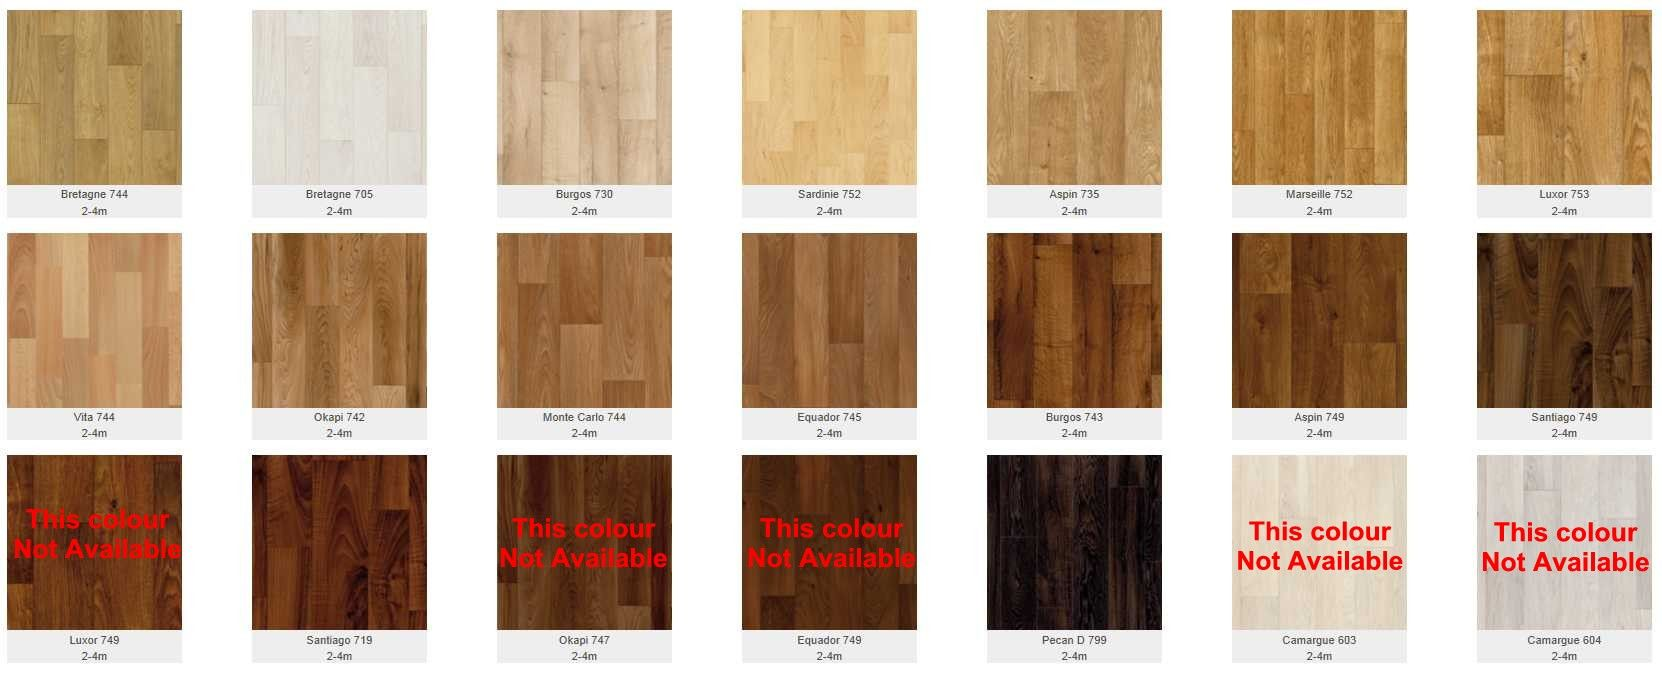 Concept wood 1 662 686 pixels vinyl wood for Linoleum flooring colors